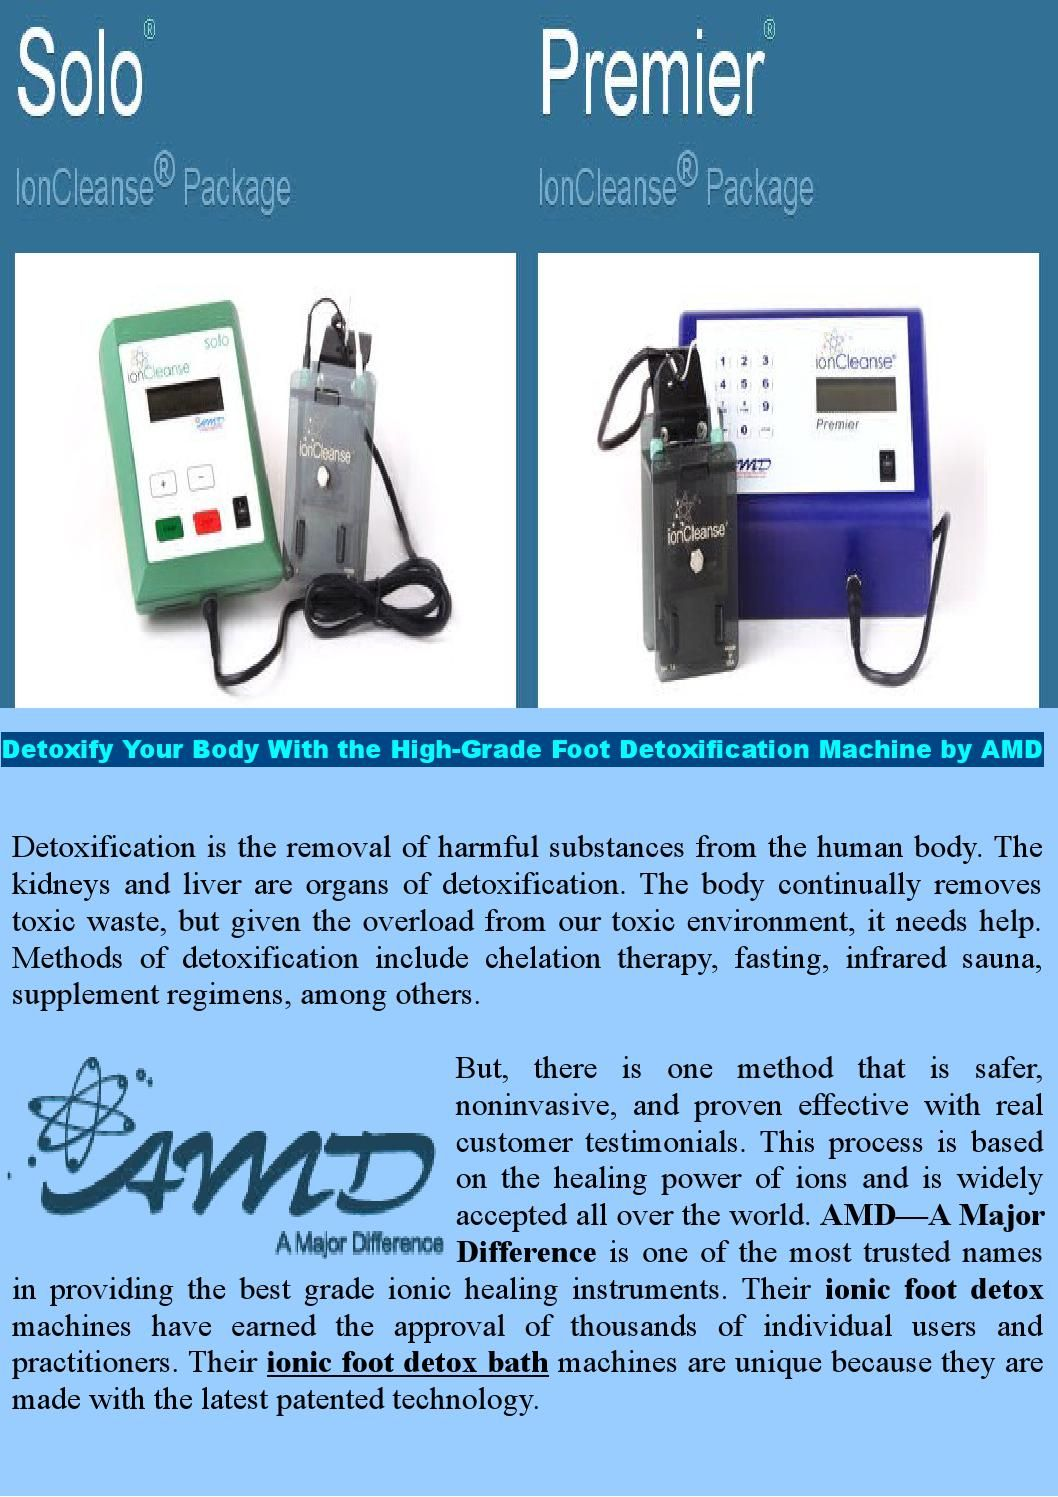 Detoxify your body with the high grade foot detoxification machine detoxify your body with the high grade foot detoxification machine by amd foot detox nvjuhfo Images